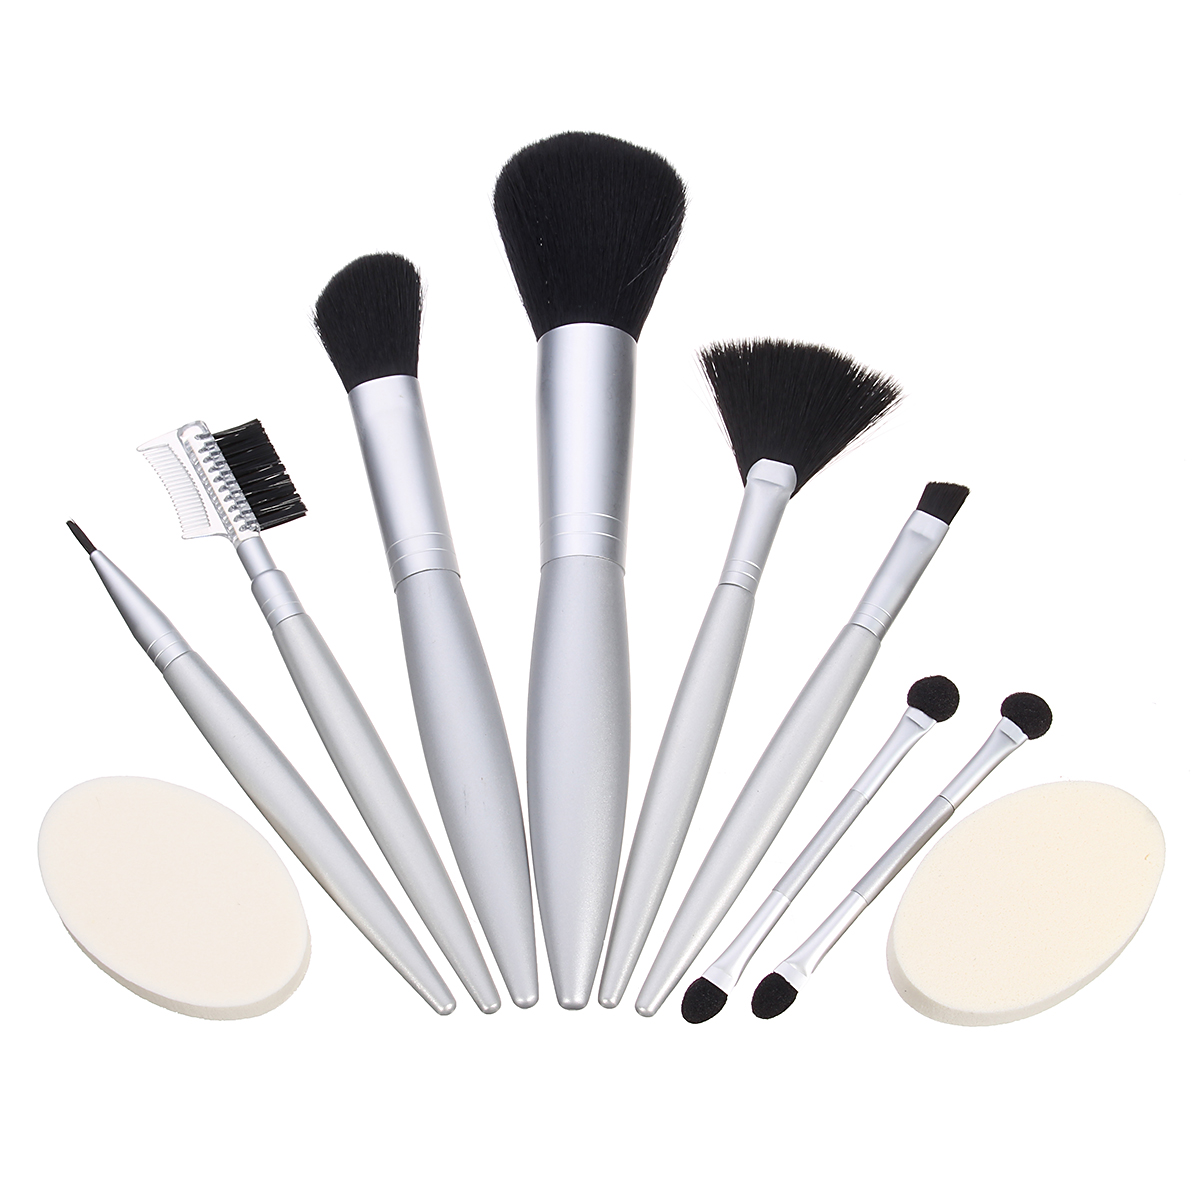 Makeup Brushes Set Kit Sharpener Lip Liner Eye Shadow Eyebrow Cosmetics Puff Fan Blush Mirror